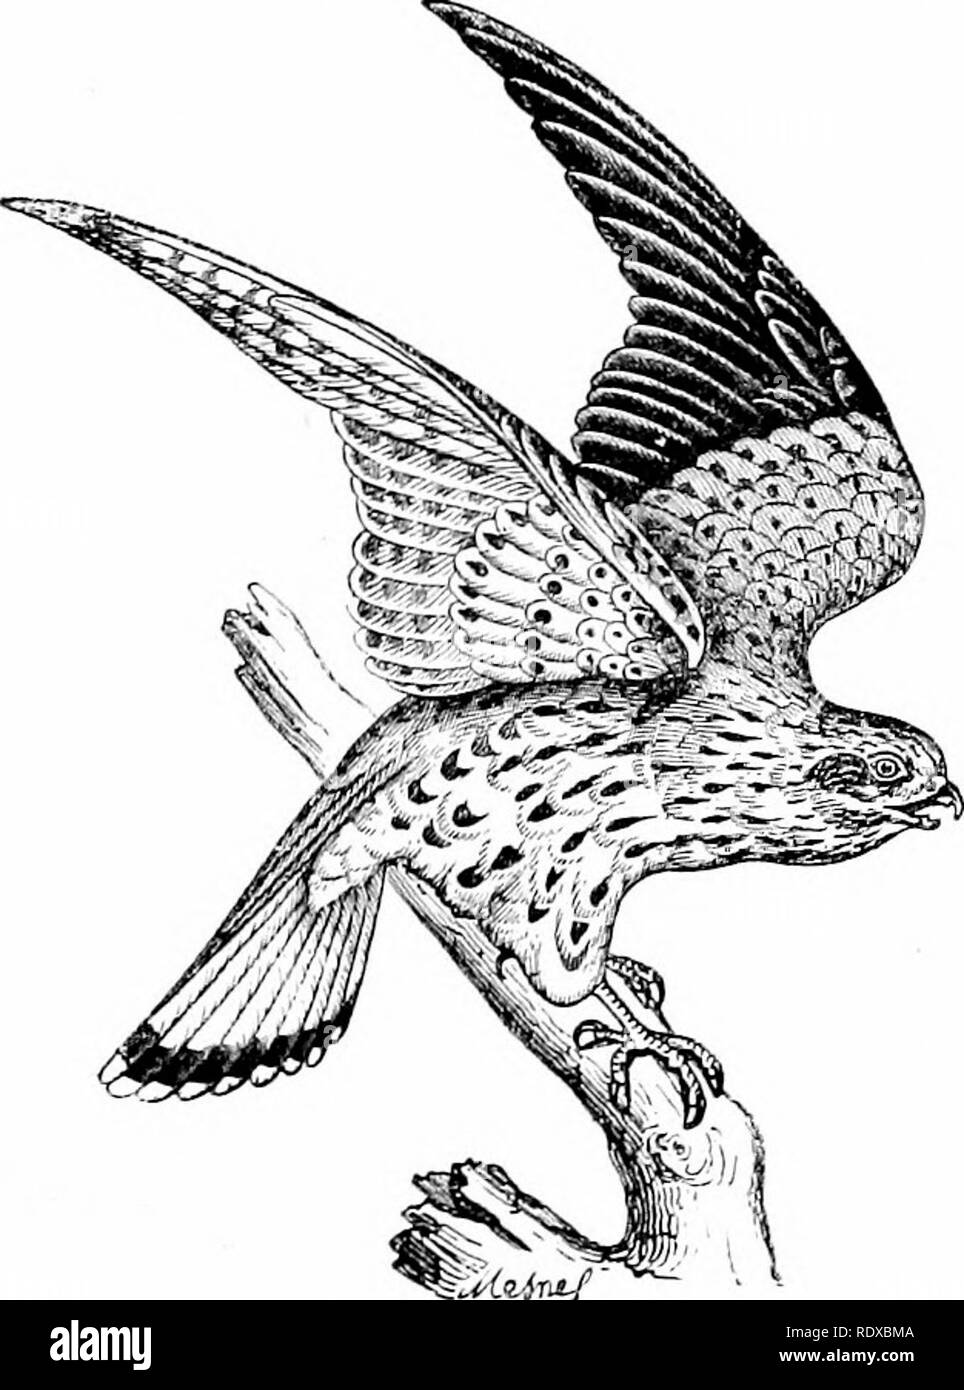 . Reptiles and birds : a popular account of their various orders : with a description of the habits and economy of the most interesting . Birds; Reptiles. HAWKINa. 013 There are other species of Falcons smaller than the precedinir. They are only distinguished from them by their size; their habits are identical, except that they prey on smaller birds, such as Quails, Larks, Swallows, and sometimes insects. These species are: the Hobby (Fig. 287), which is found all over Europe, and also in Africa—it is about a foot in height; the Merlin (Fig. 288), which is not much larger than a Thrush, and in - Stock Image